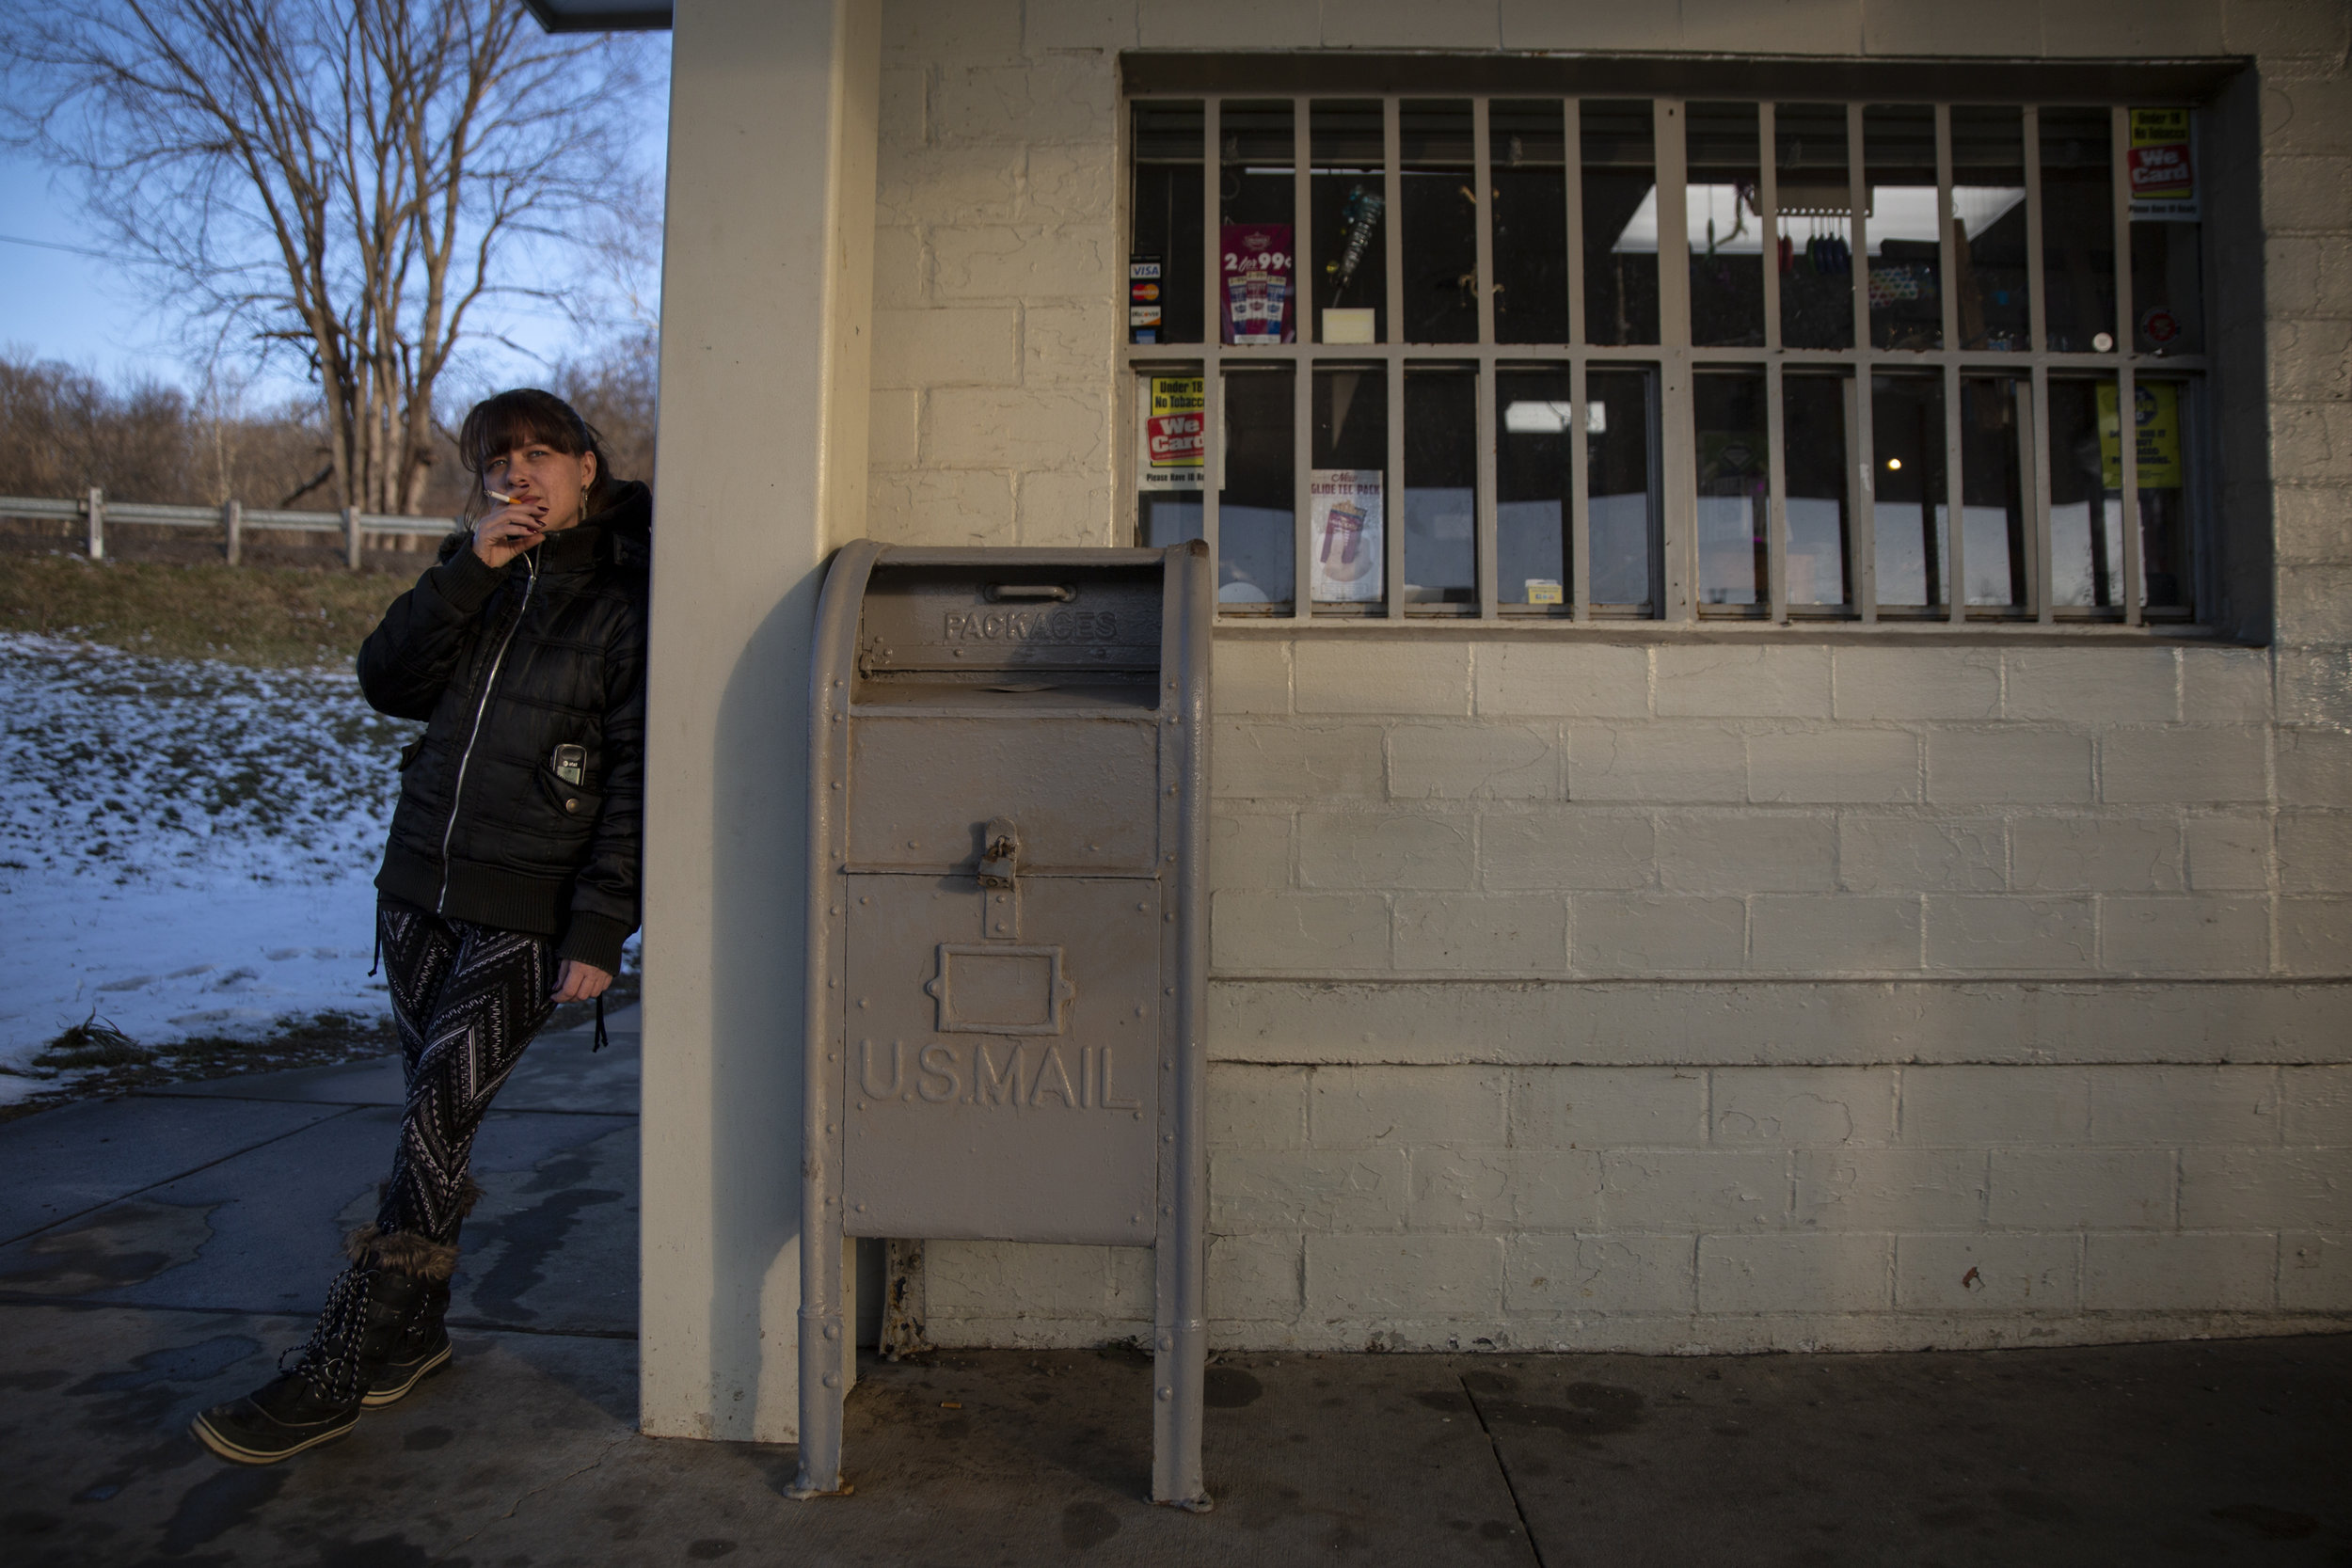 """Brandy Riley takes a smoke break while working at Gilchrist Convenient Store, the only business in the unincorporated community of Sharpsburg, Ohio. This store and gas station also operates as a U.S. Post Office for everyone in the 45777 Sharpsburg zip code. """"This place is like Grand Central Station,"""" said Riley."""